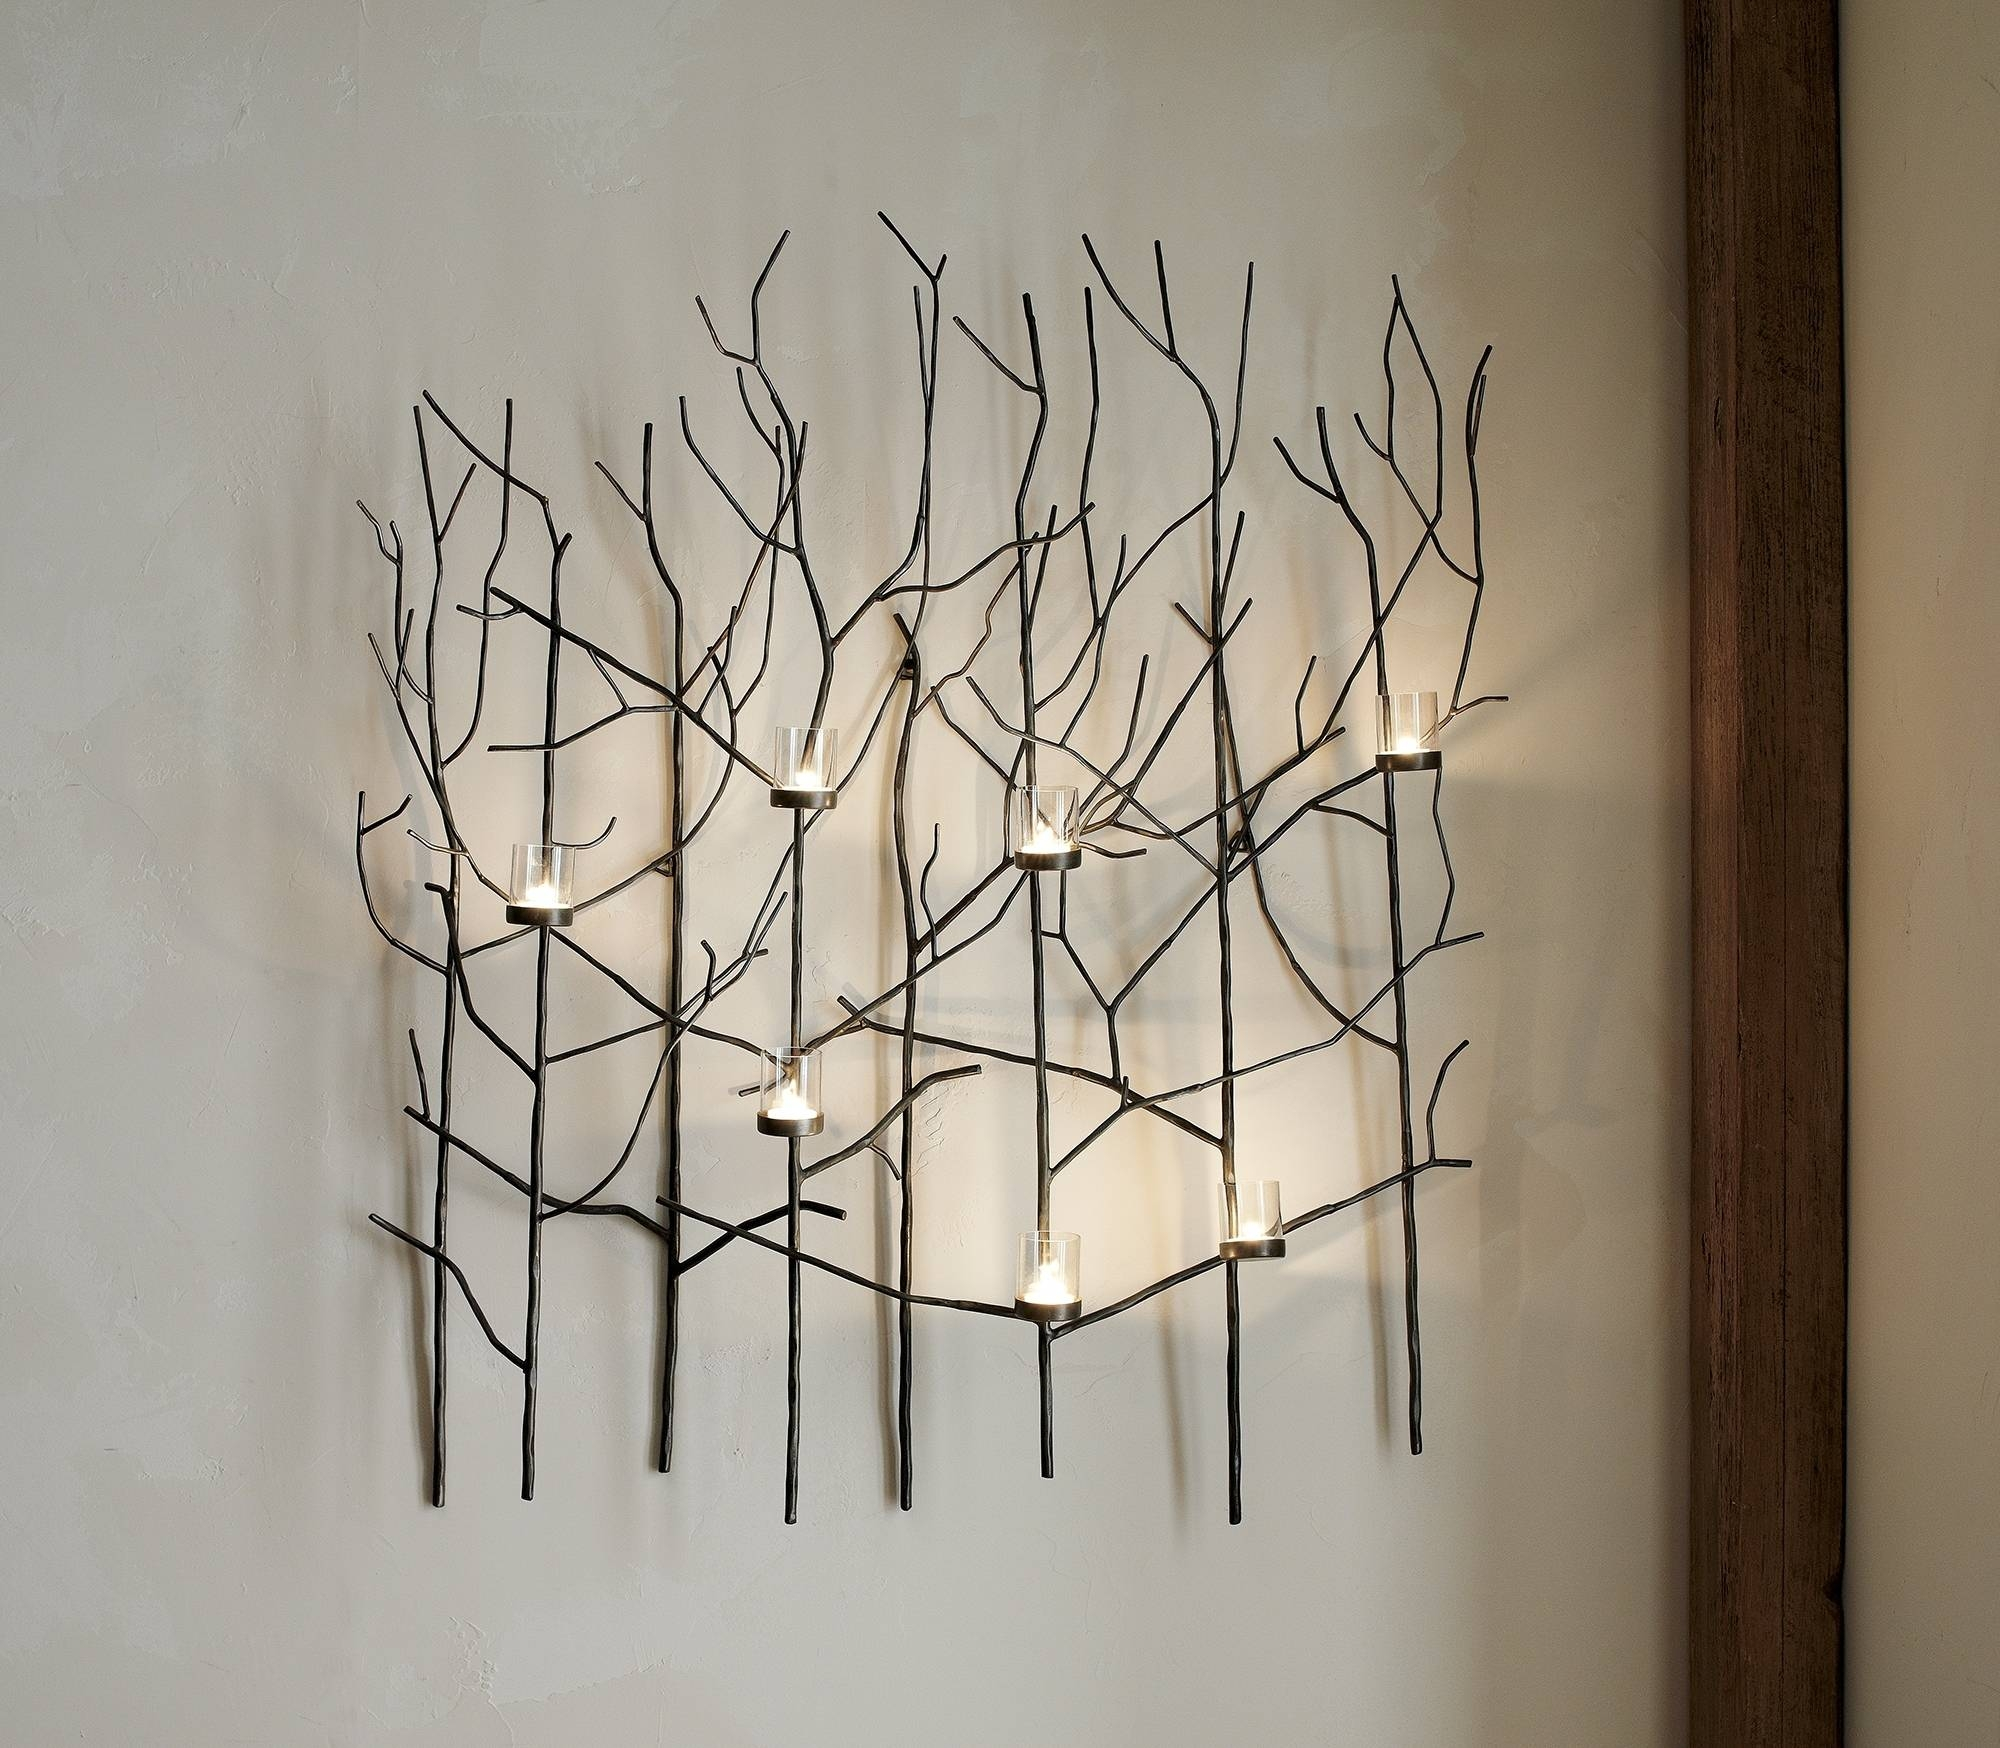 Wall Ideas Tealight Candle Holder Wall Decor Wall Art : Metal Wall Regarding 2017 Metal Wall Art With Candles (View 10 of 20)